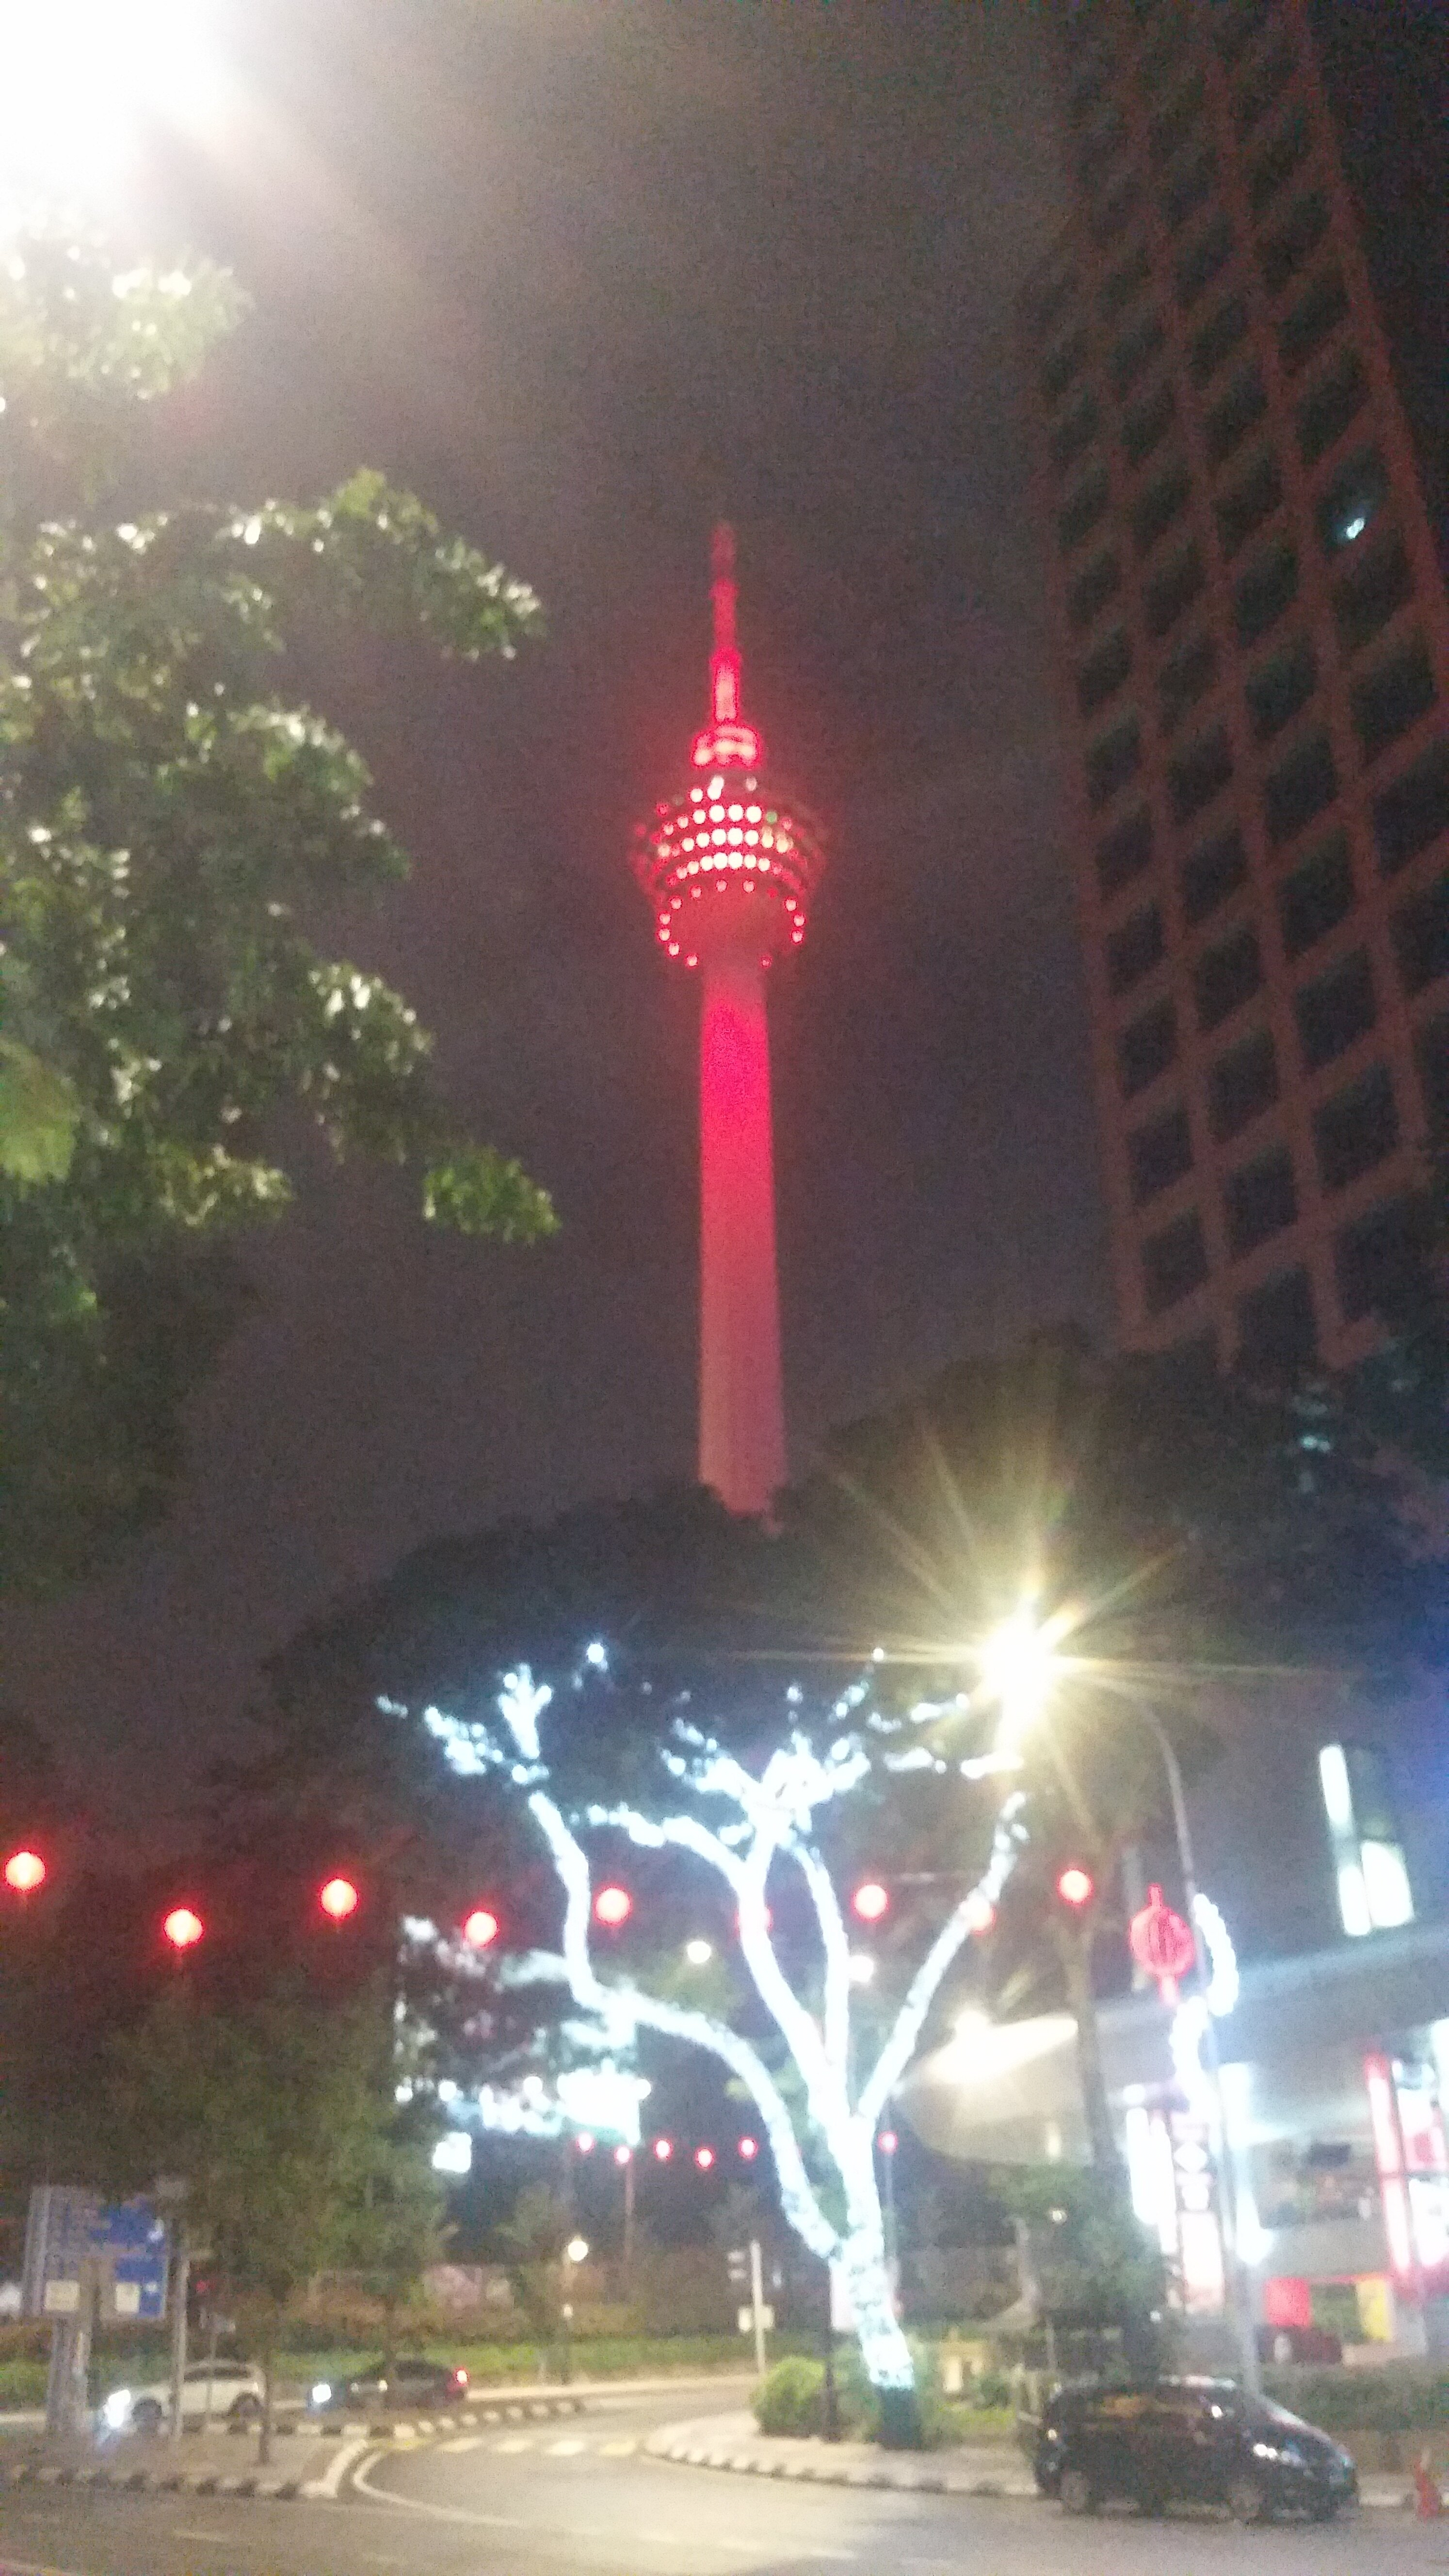 KL Tower from afar.